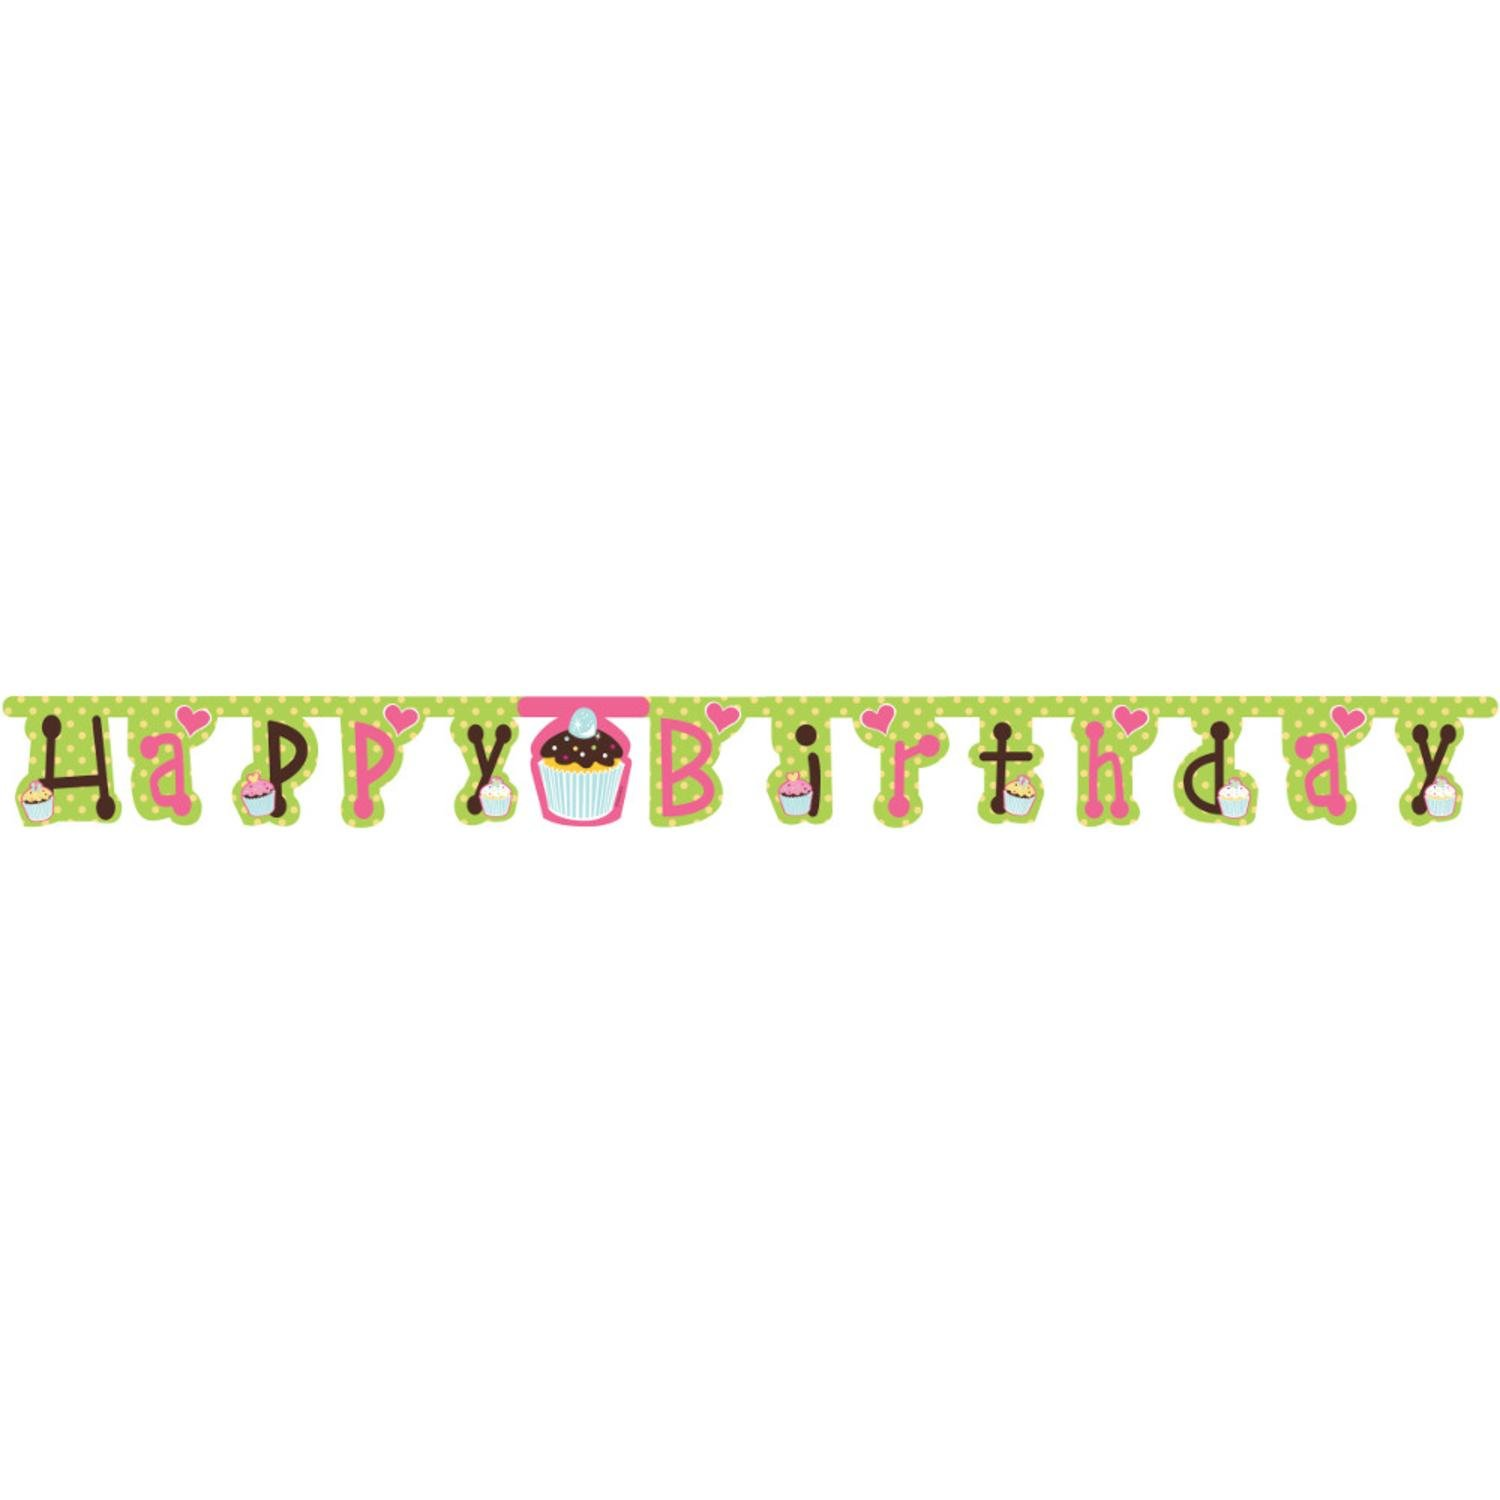 Club Pack of 12 Large Sweet Treats Jointed ''Happy Birthday'' Party Decoration Banner by Party Central